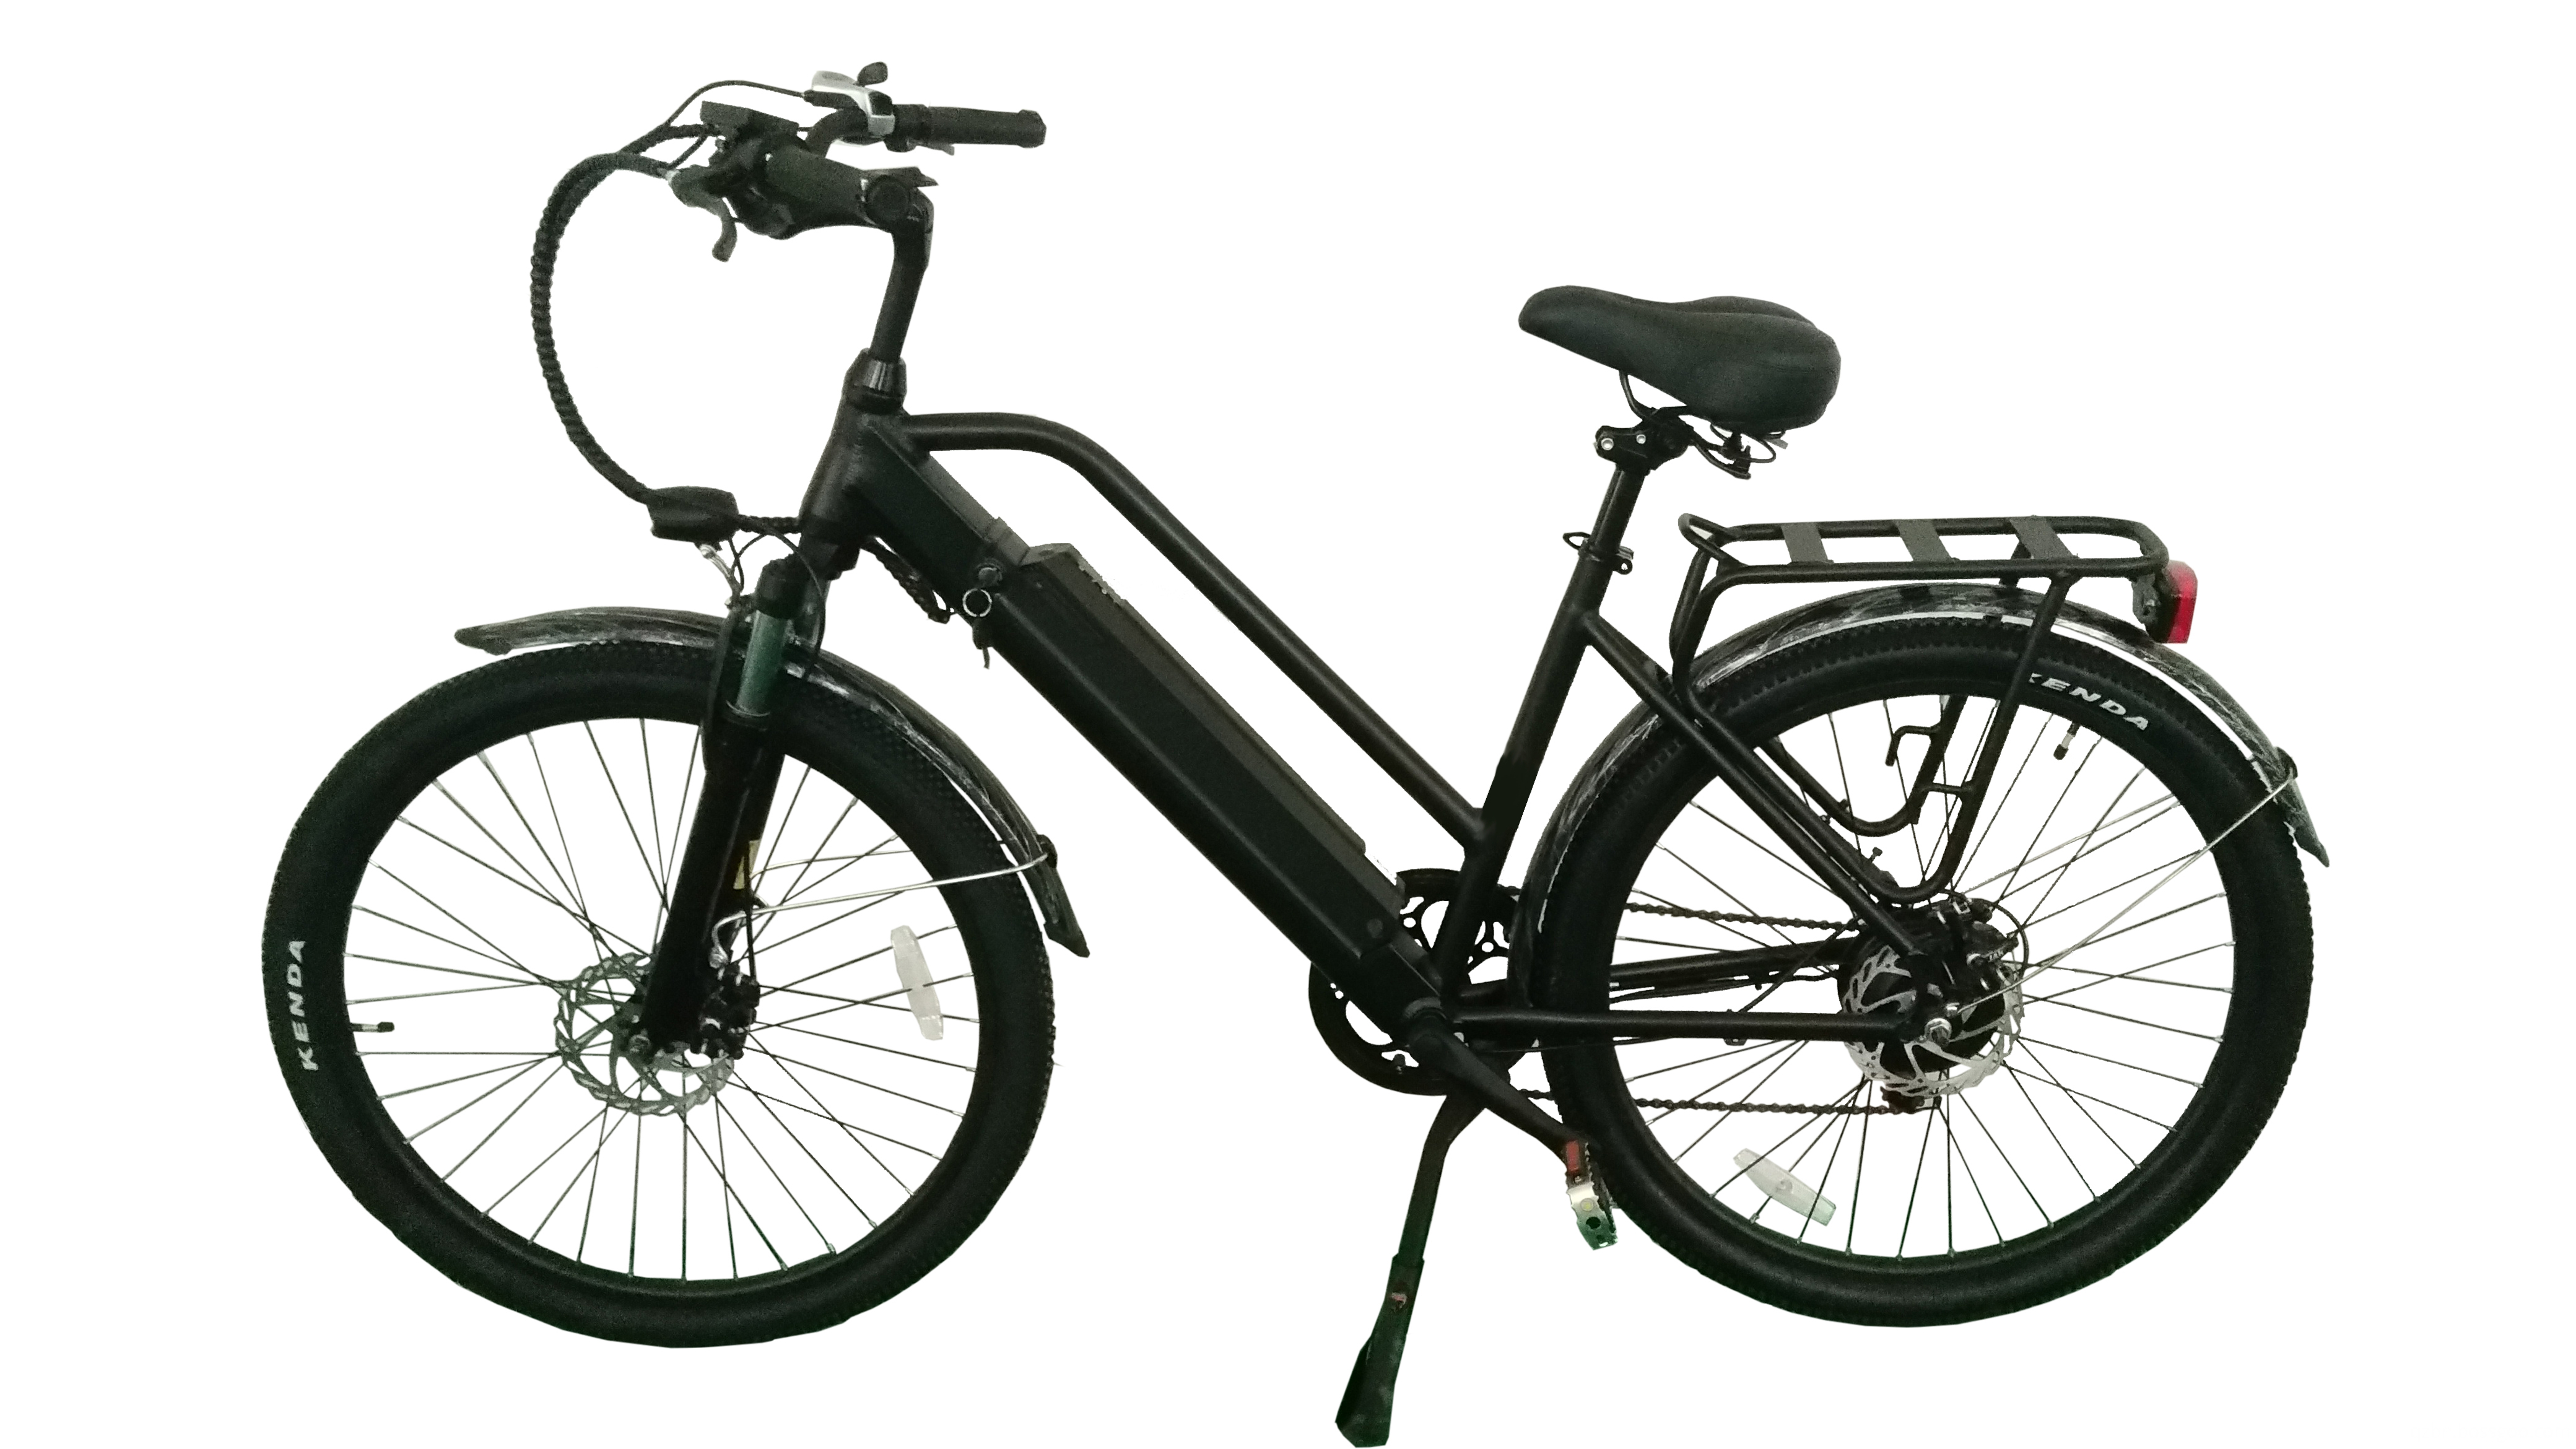 Lithium electric bicycle with switch horn